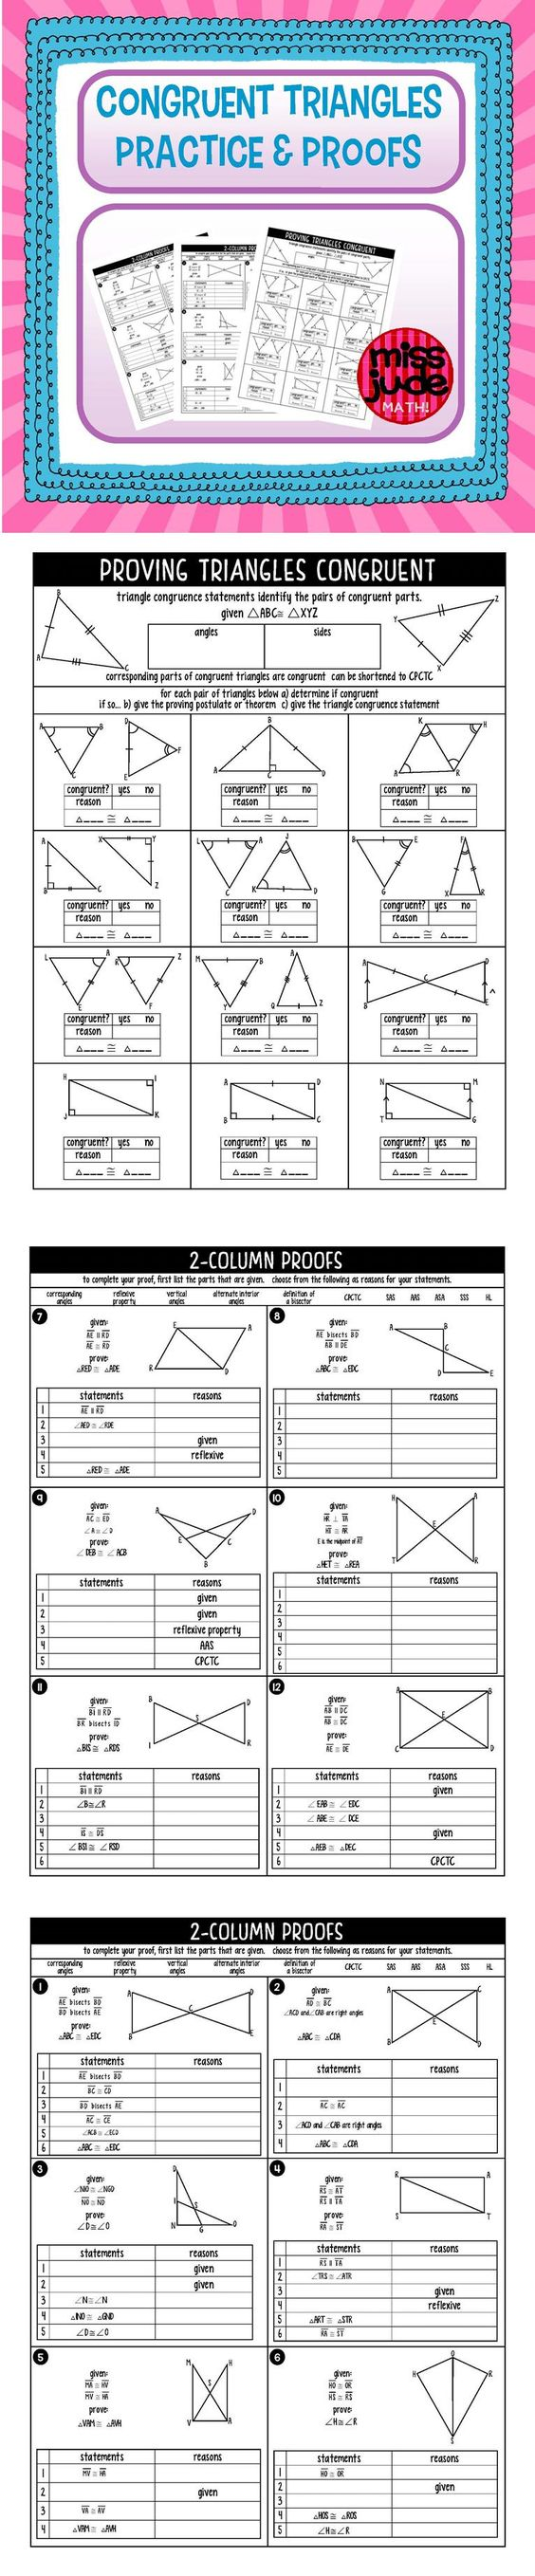 proofs involving congruent triangles worksheet answer key congruent triangles practice and. Black Bedroom Furniture Sets. Home Design Ideas